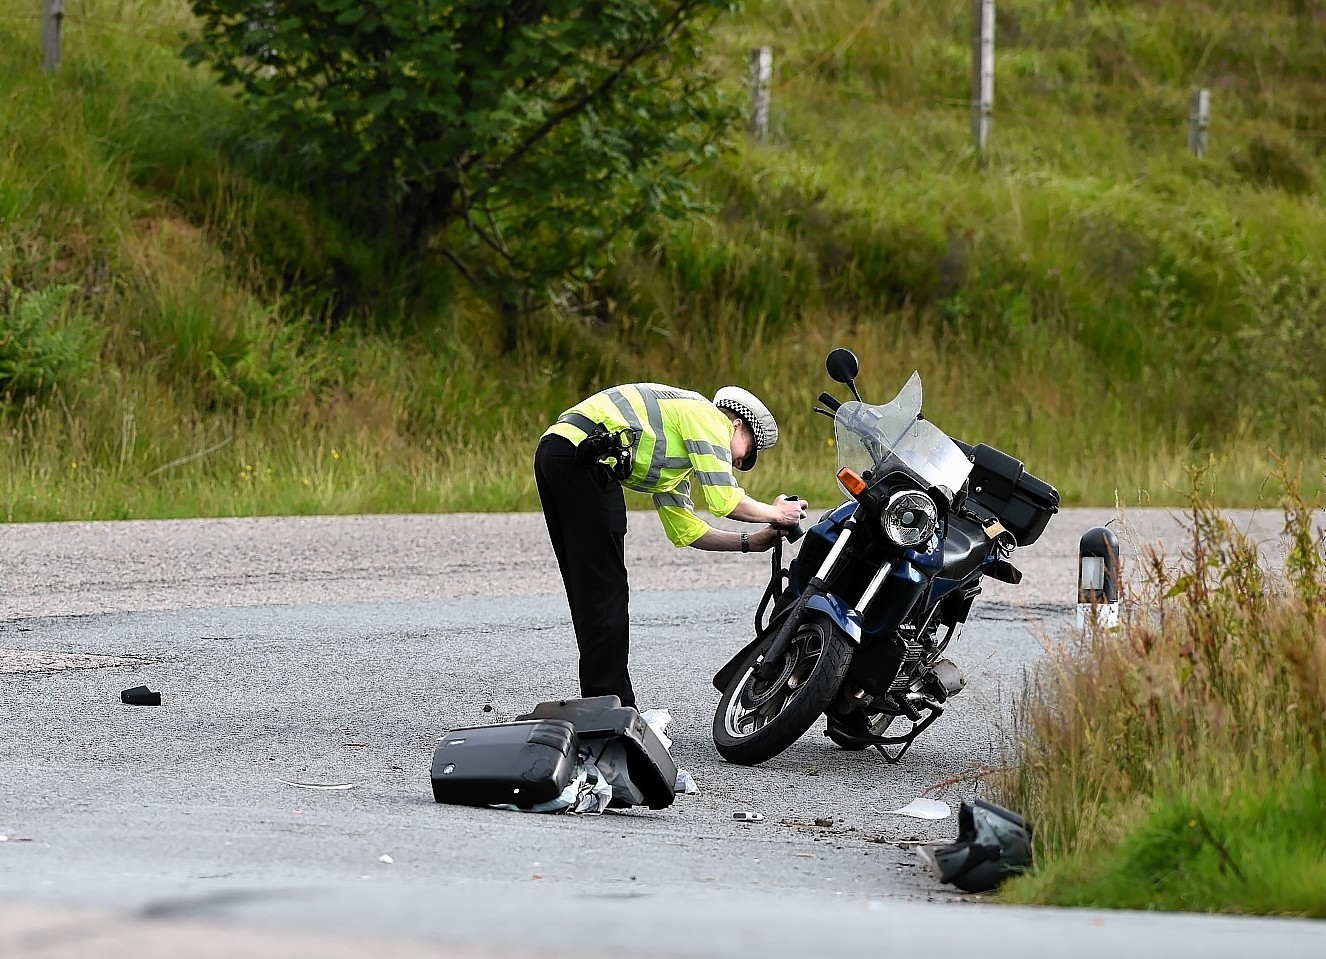 A police officer at the scene of a fatal motorcycle accident in Wester Ross